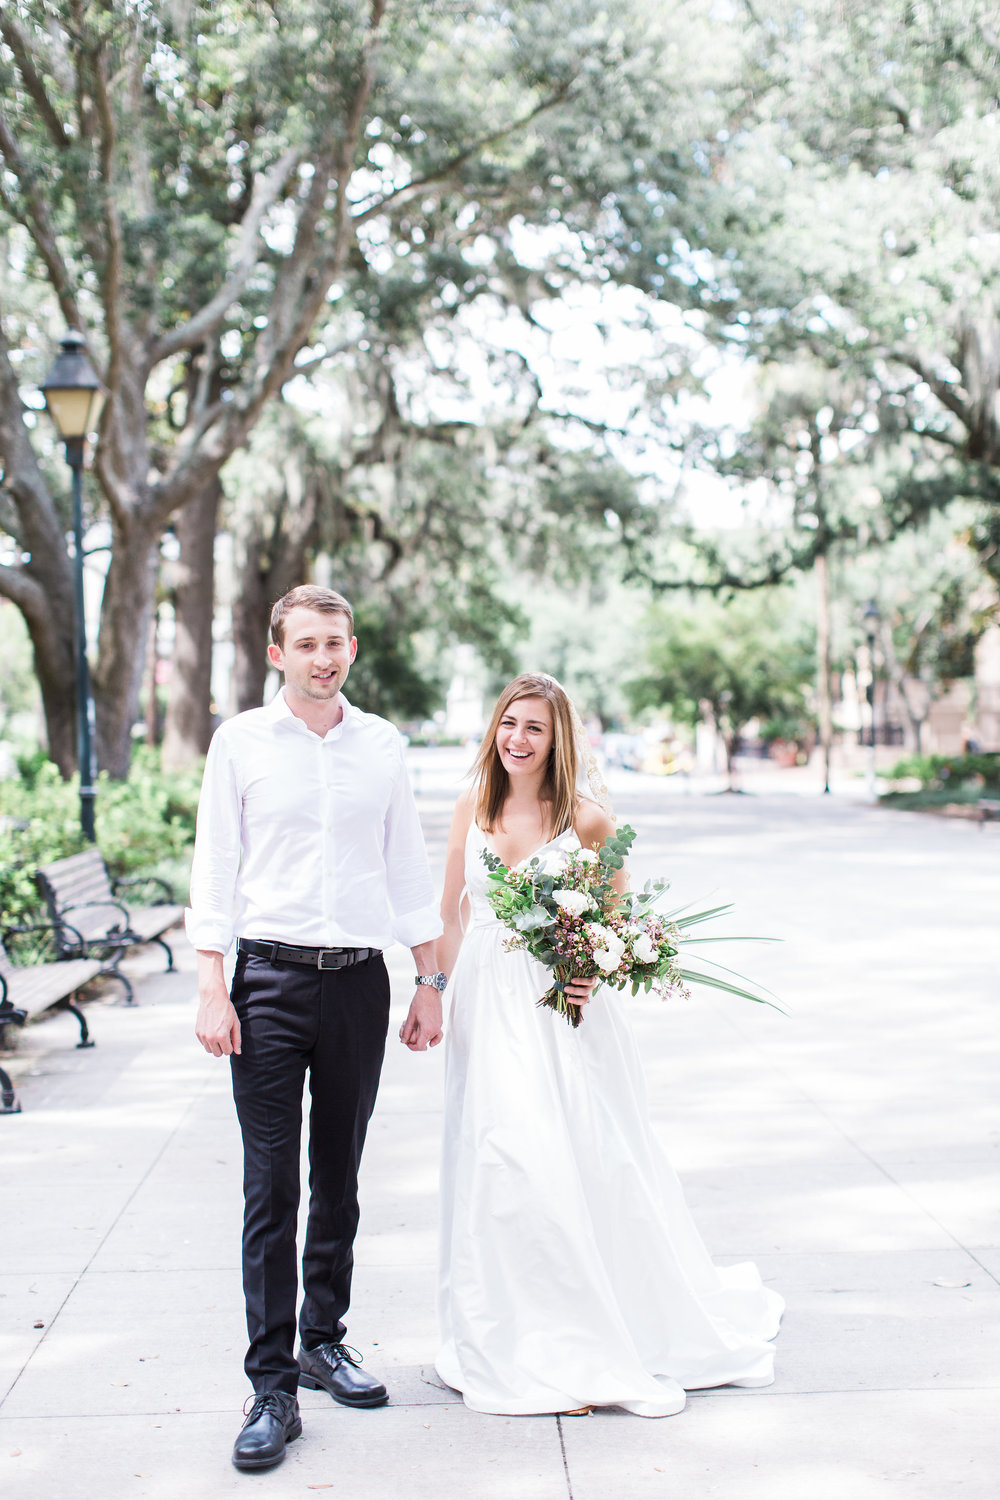 apt-b-photography-kate-mcdonald-mccants-forsyth-park-elopement-forsyth-fountain-rainy-wedding-day-savannah-florist-ivory-and-beau-bridal-boutique-savannah-wedding-gowns-savannah-weddings-savannah-wedding-planner-adele-amelia-gold-veil-2.jpg